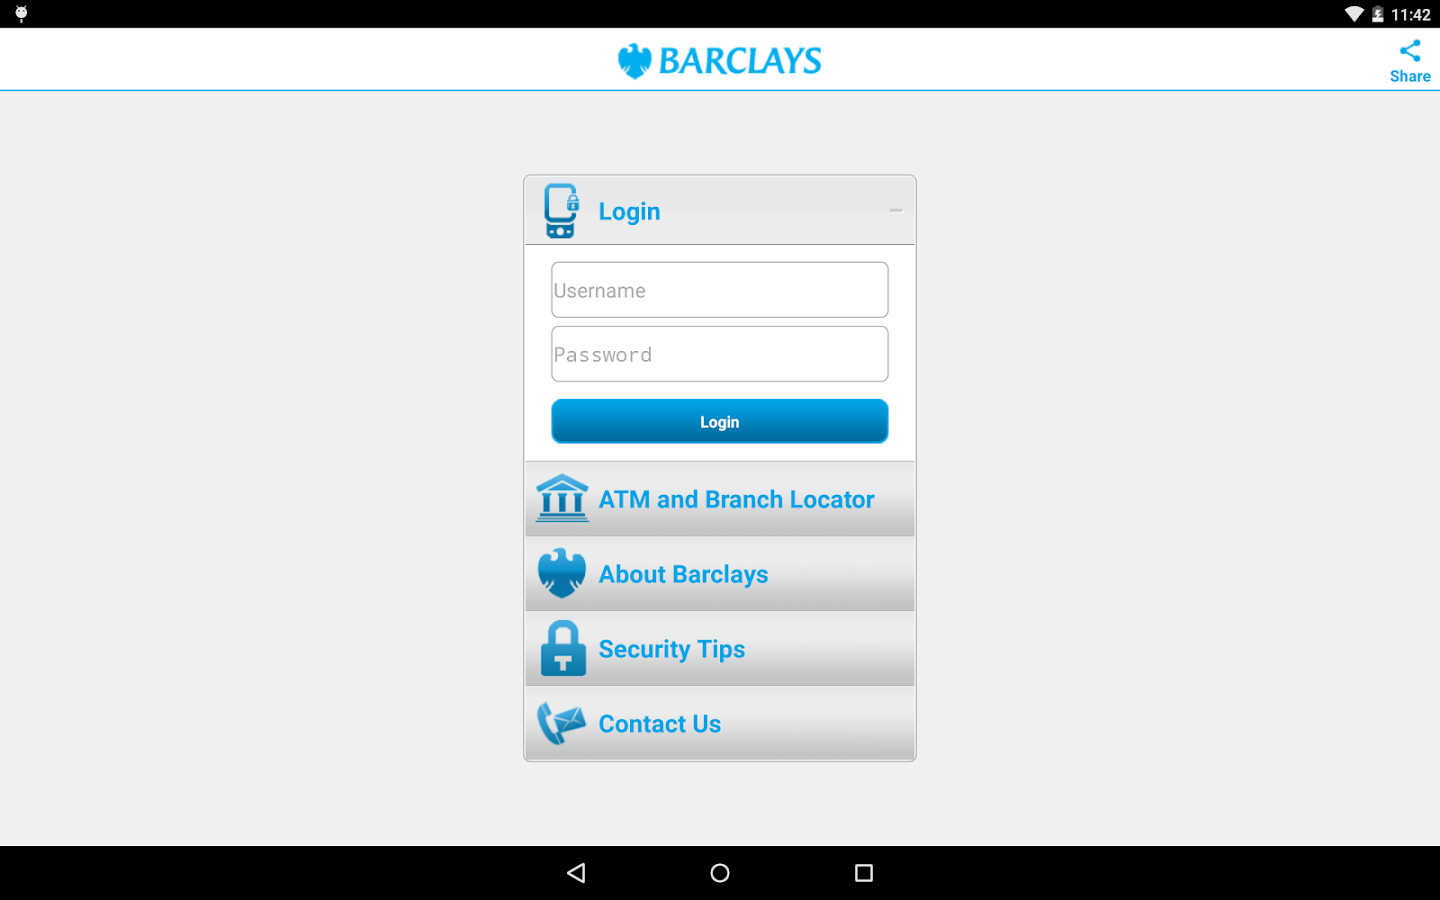 How to close barclays account - Knc website